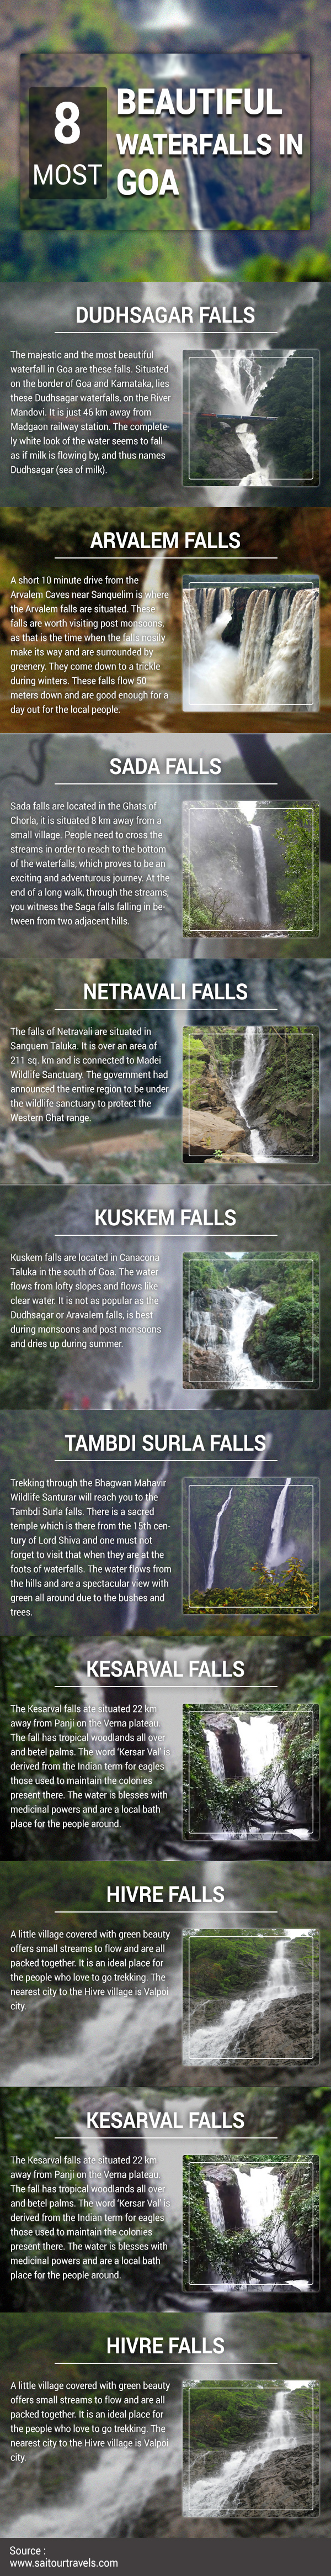 8 Most Beautiful Waterfalls in Goa